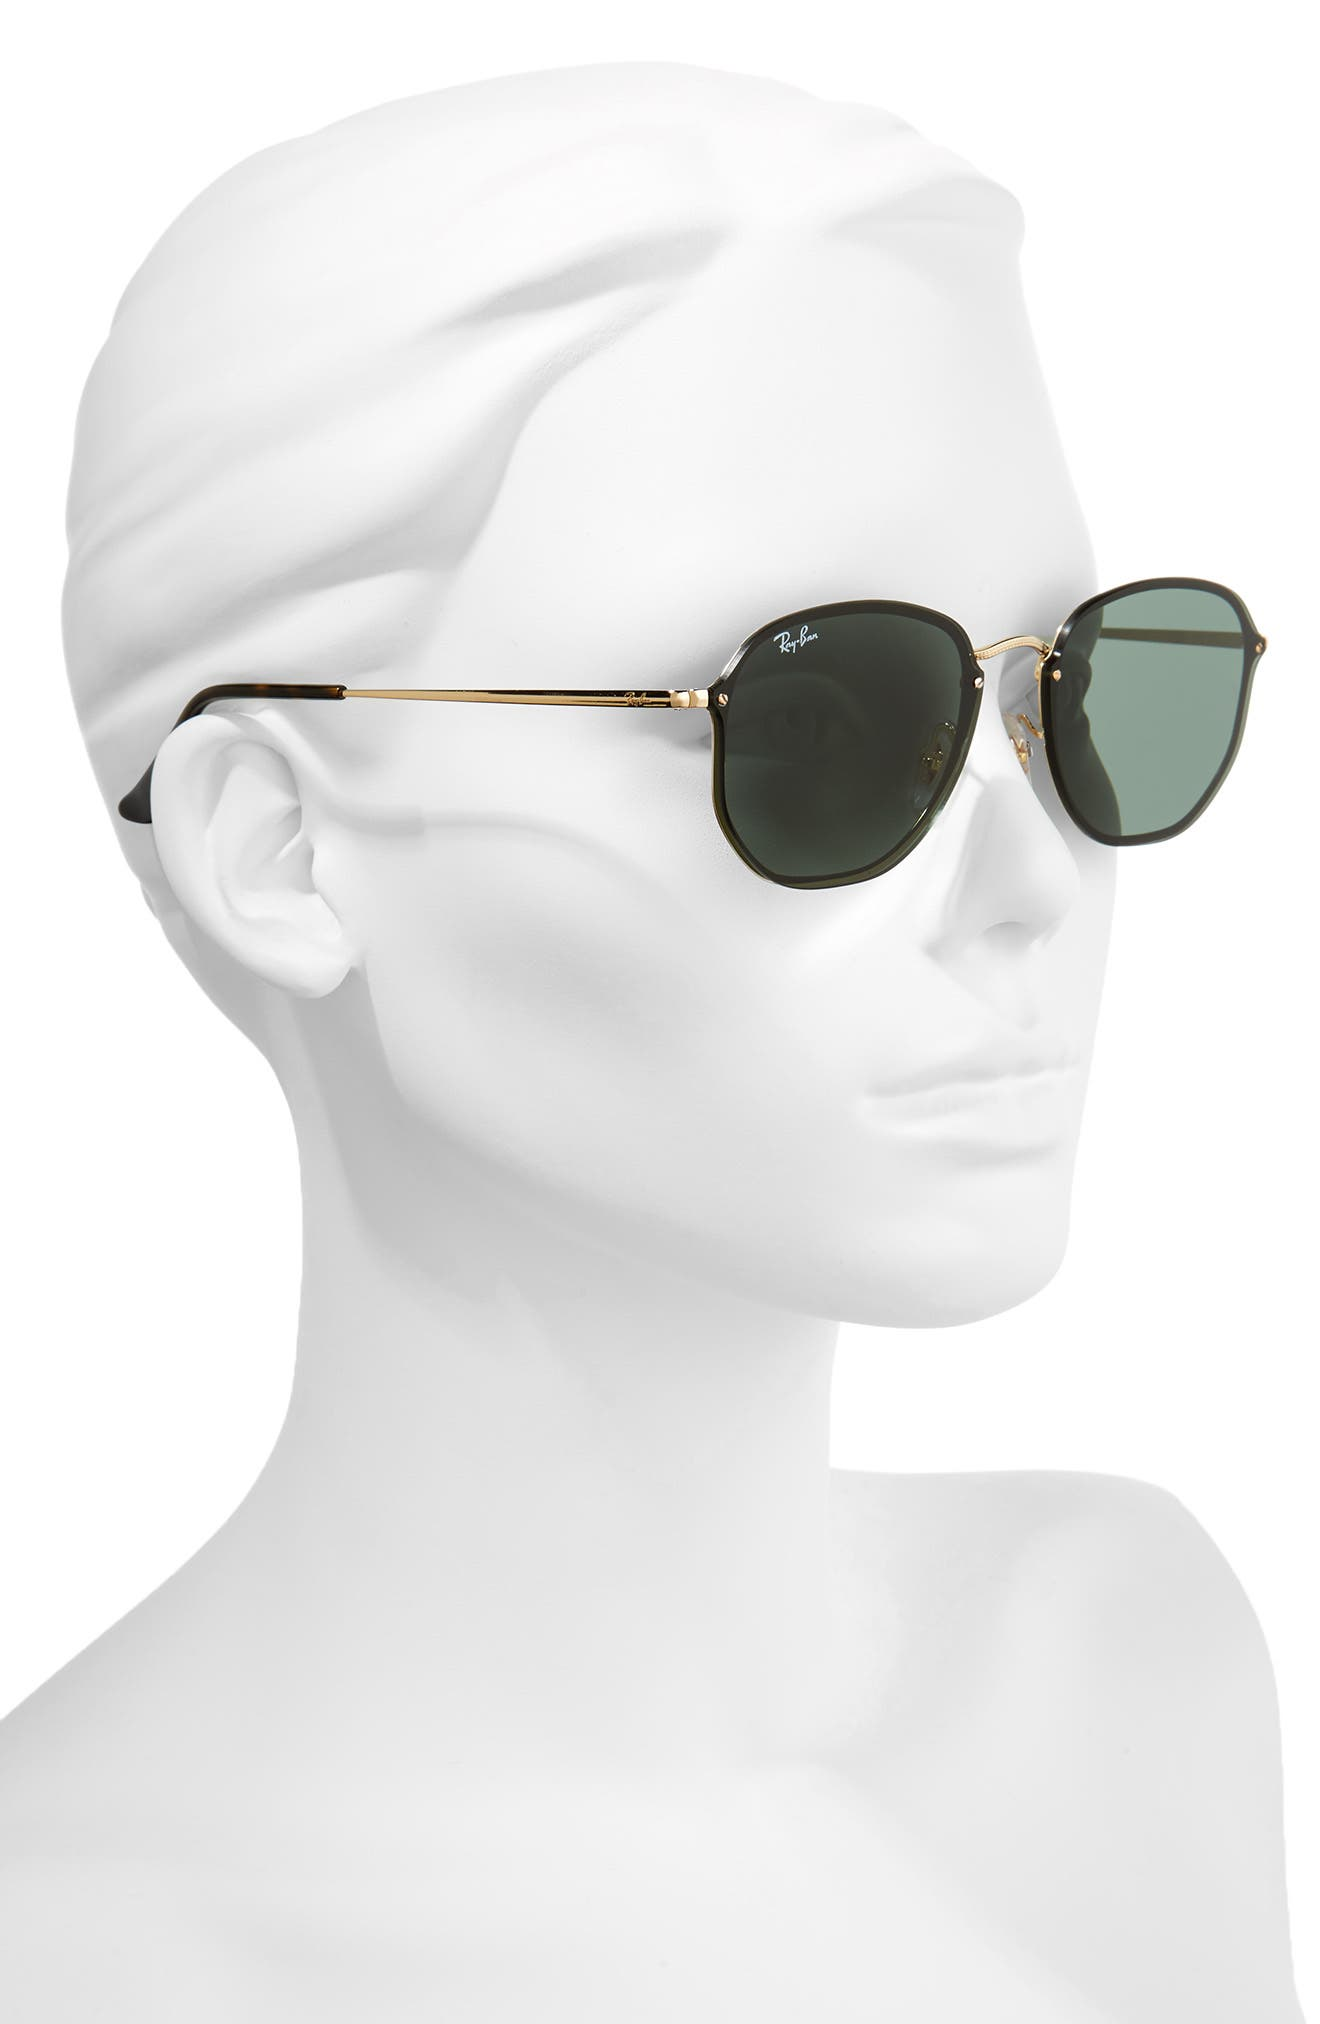 58mm Aviator Sunglasses,                             Alternate thumbnail 2, color,